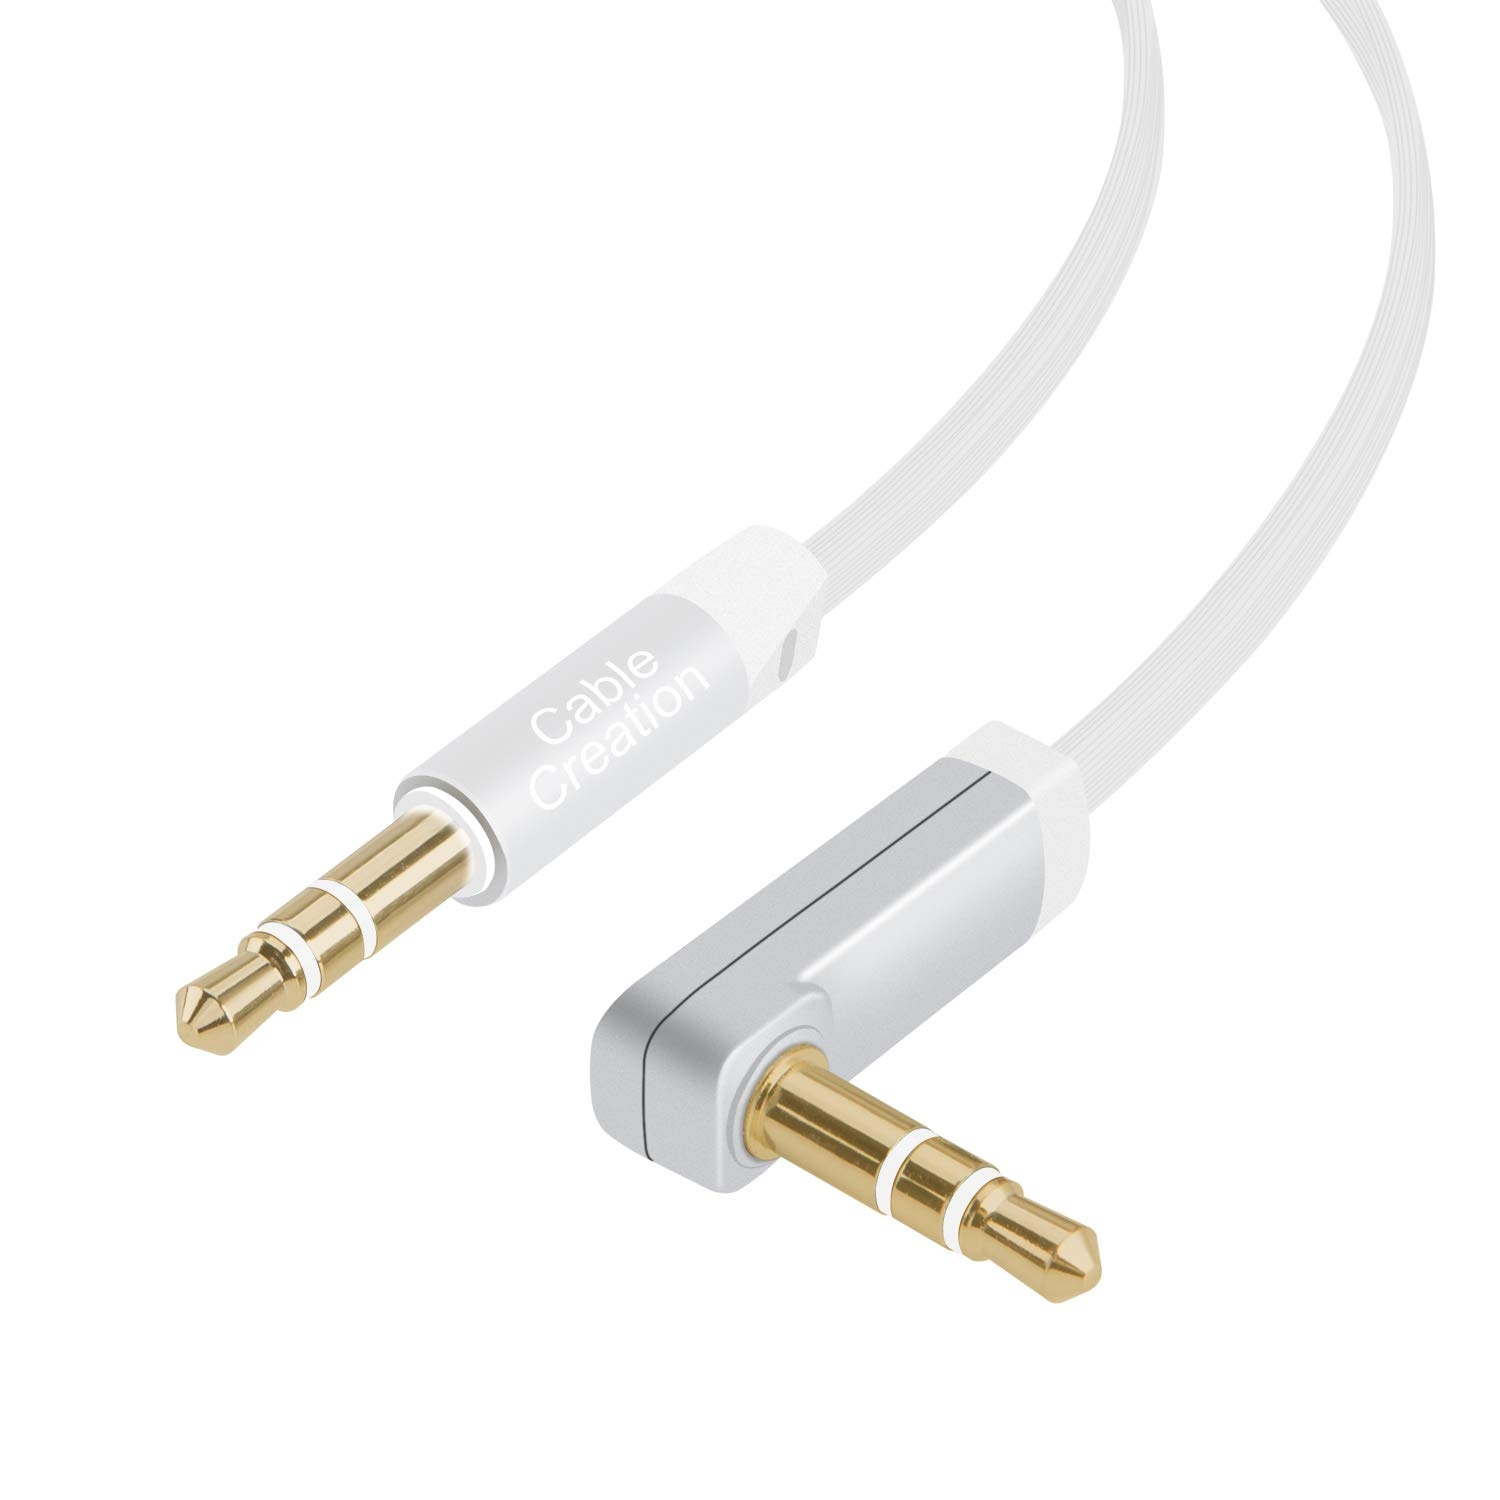 Newly Arrival Rca To 3.5mm - 3.5mm Audio Cable 1.5 Feet/0.45 Meters, #CC0400 – CableCreation